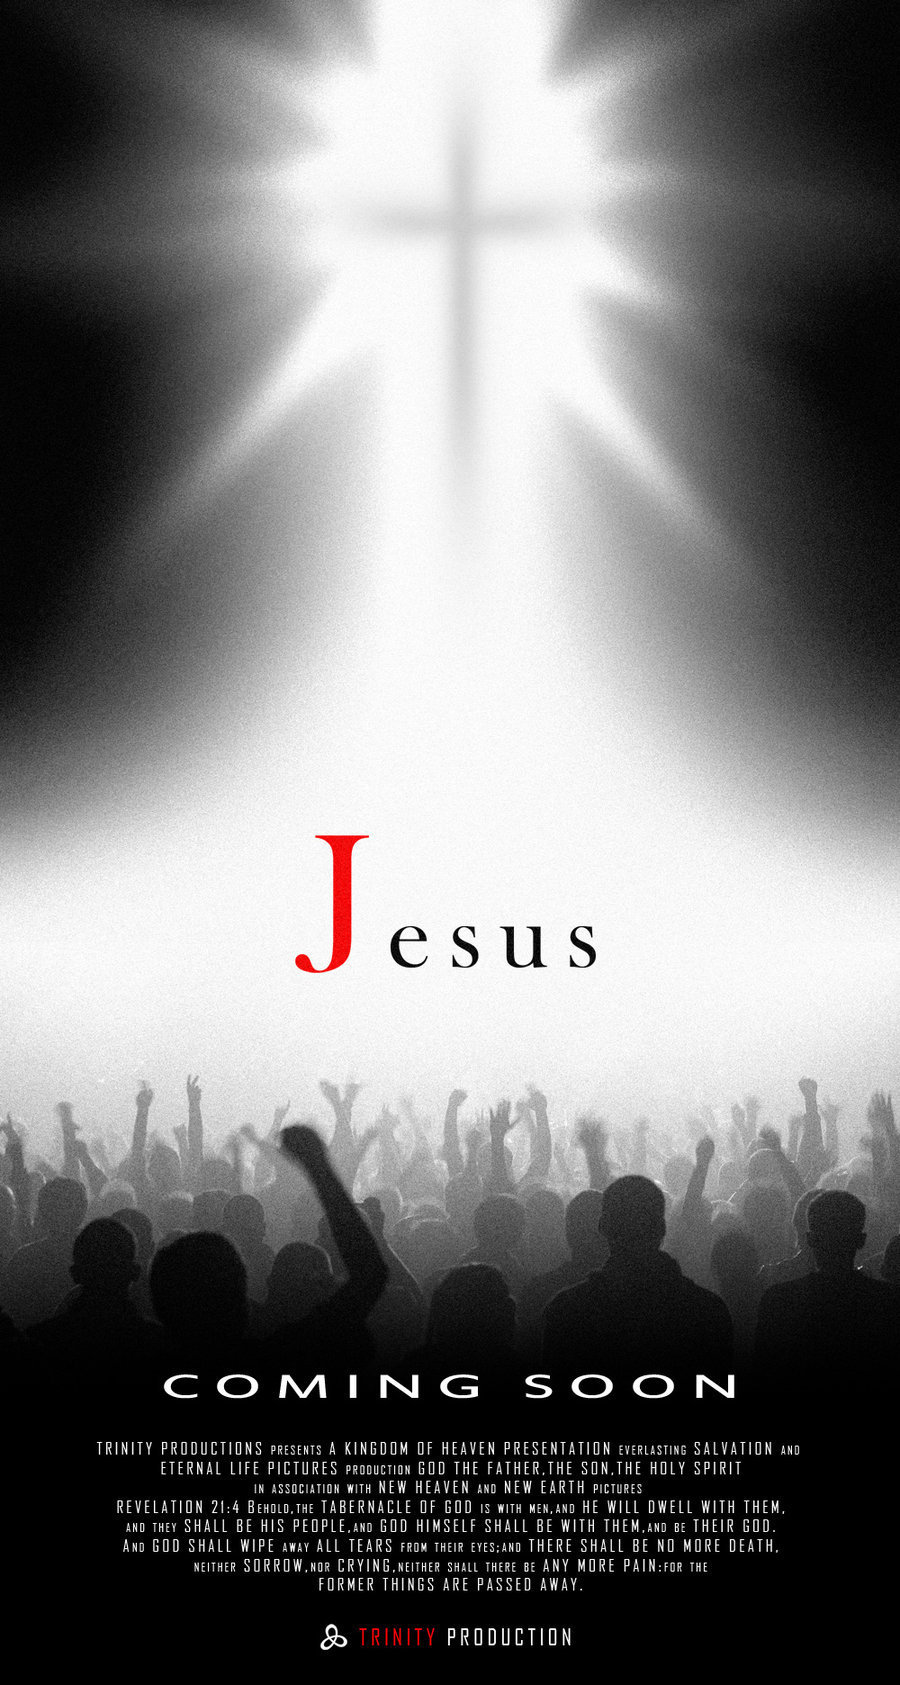 Creative for christ images jesus coming soon hd wallpaper and creative for christ images jesus coming soon hd wallpaper and background photos thecheapjerseys Image collections